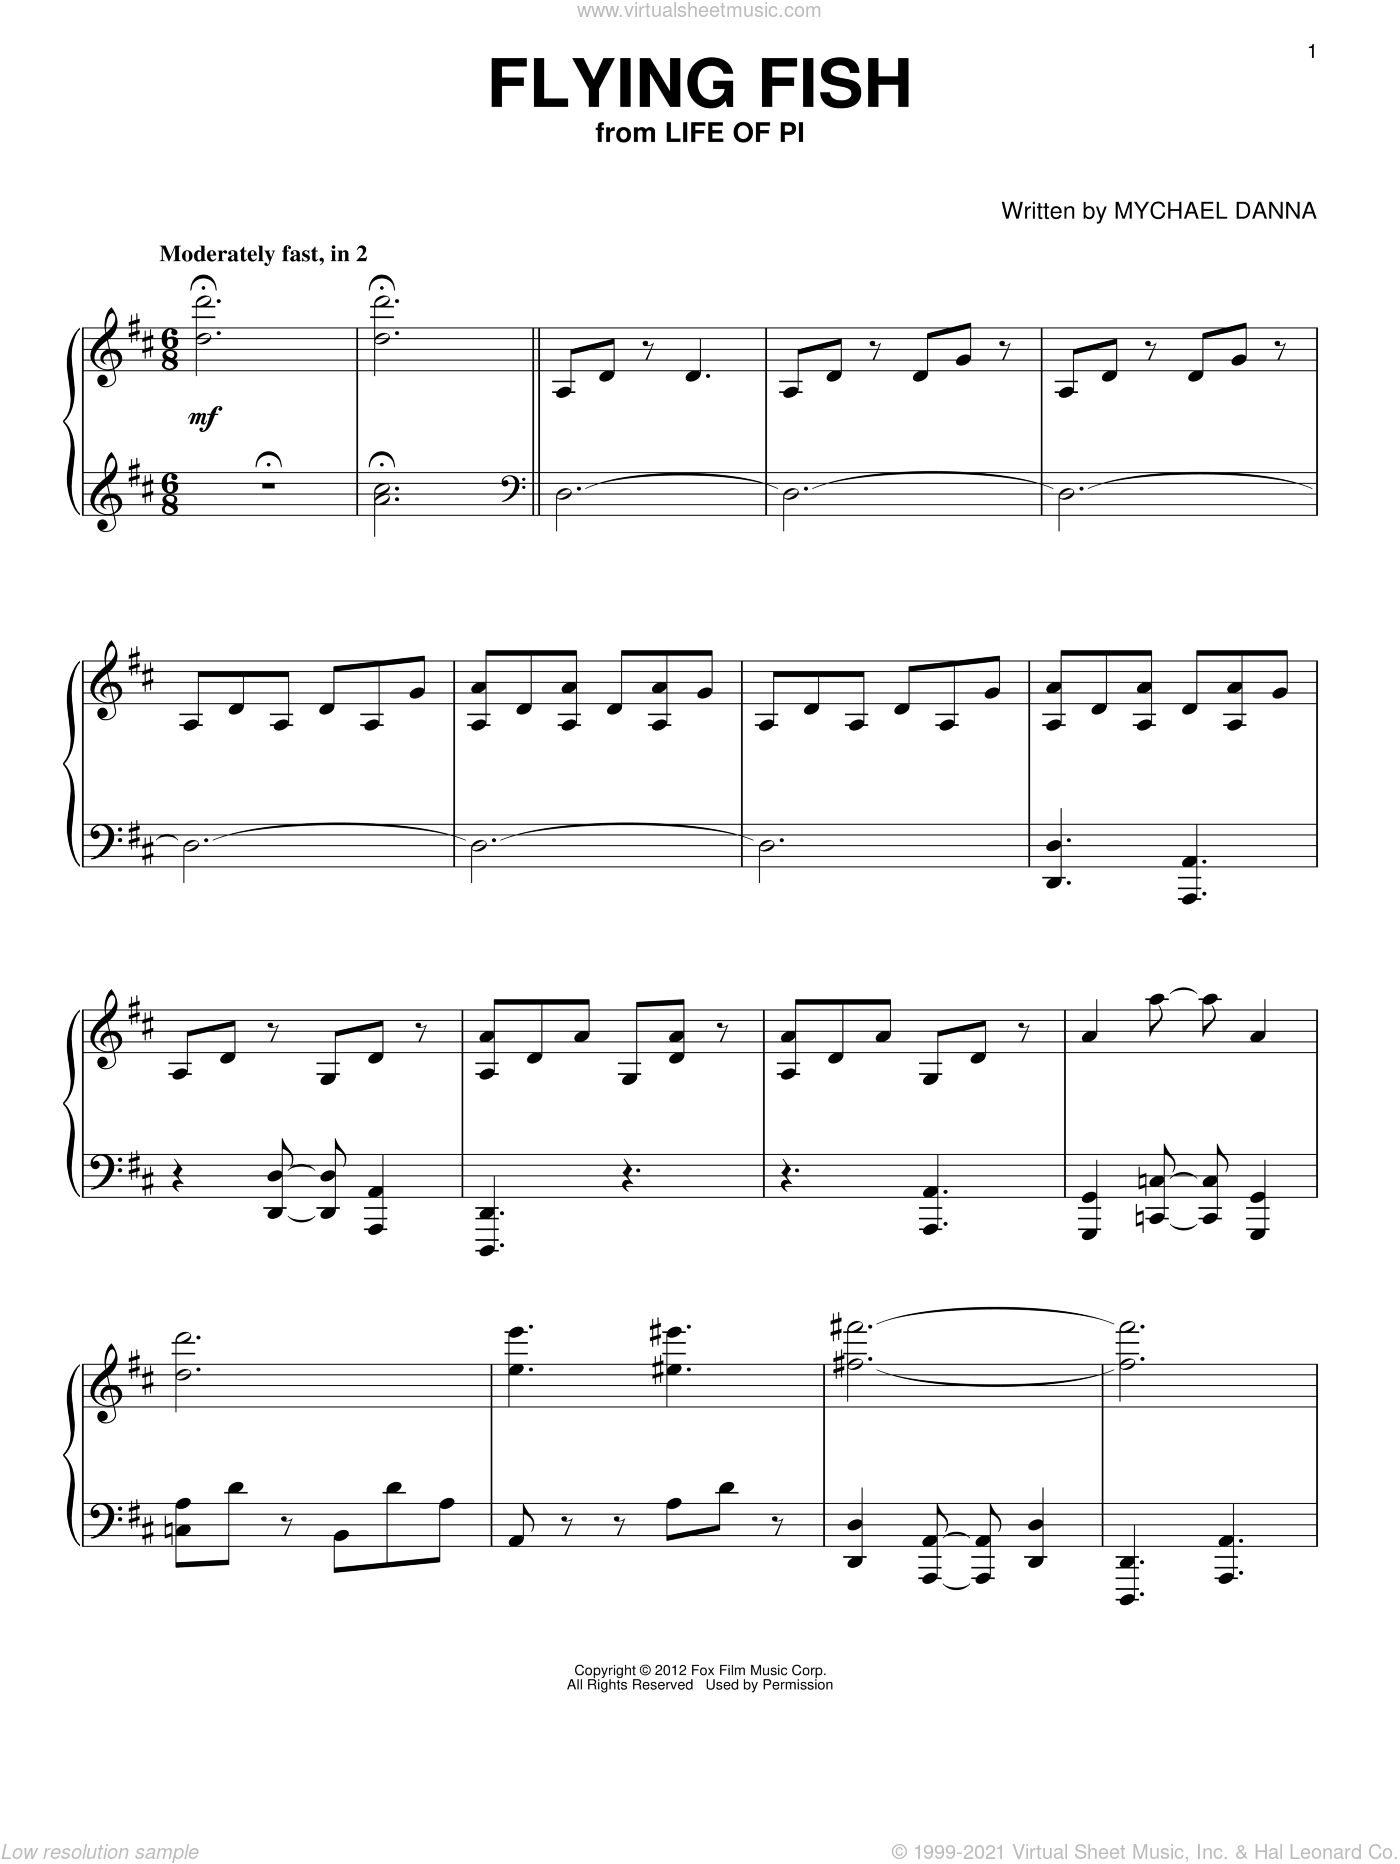 Flying Fish sheet music for piano solo by Mychael Danna, intermediate. Score Image Preview.